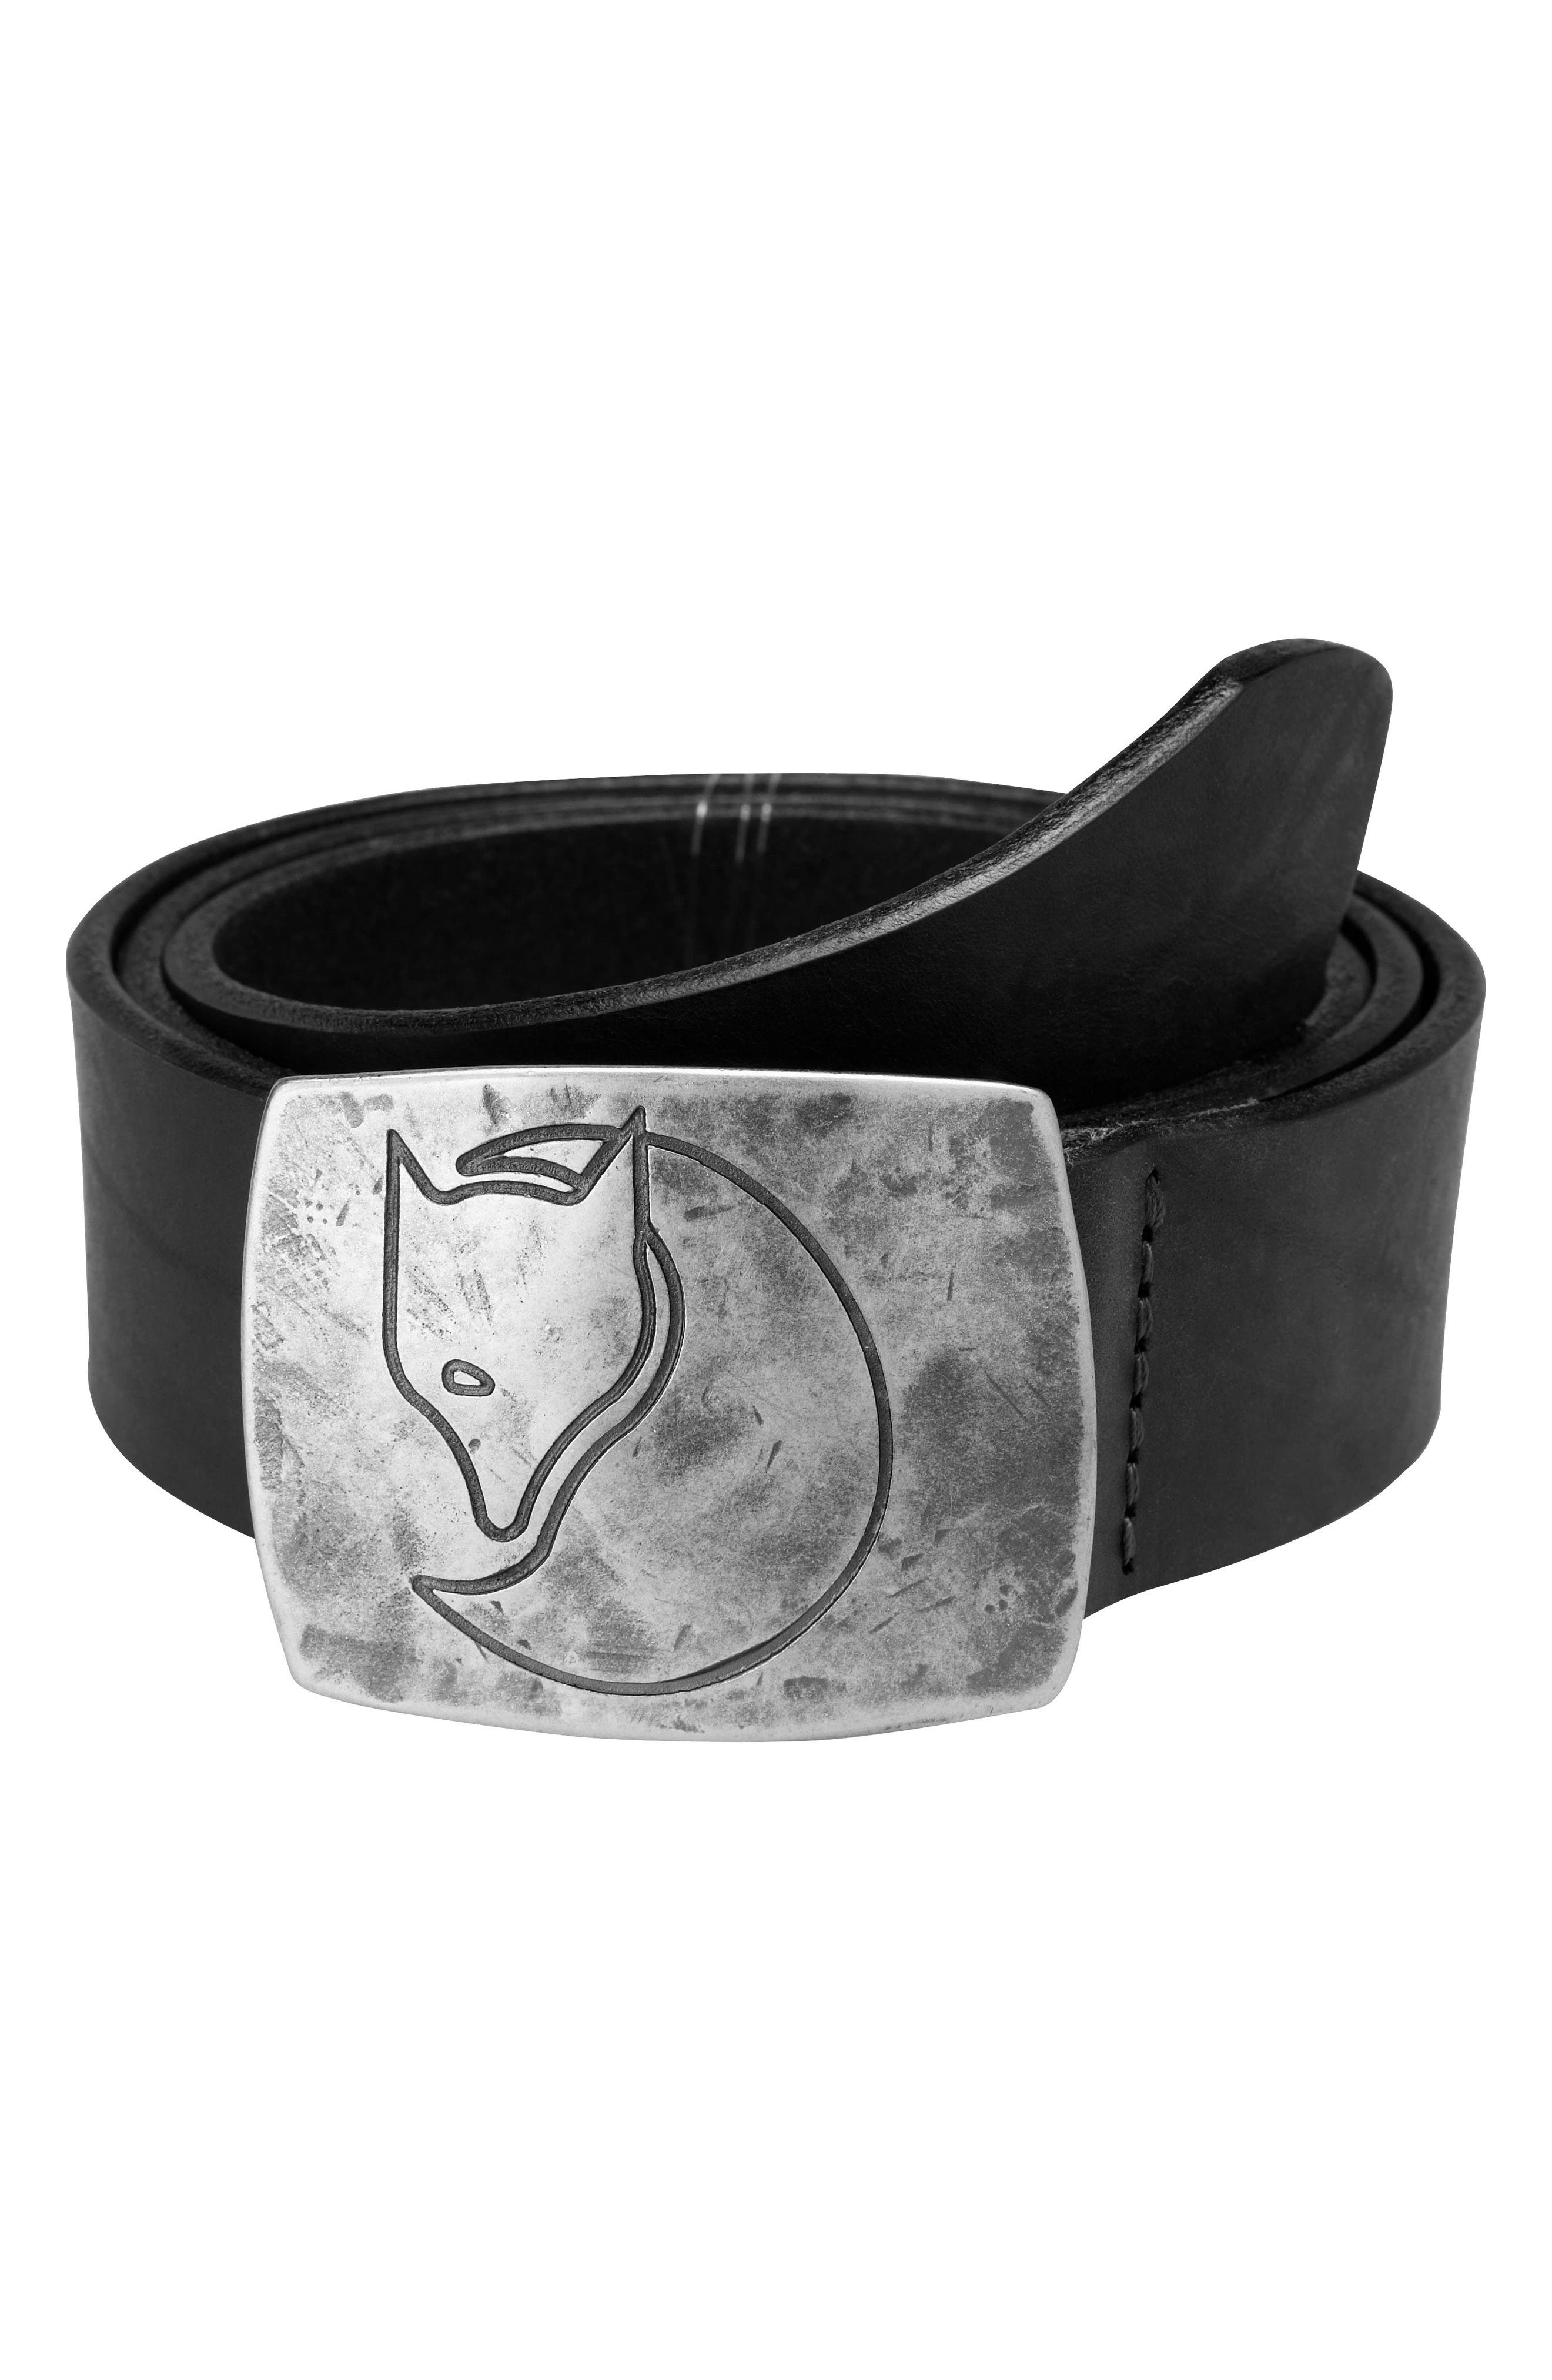 Murena Leather Belt,                             Main thumbnail 1, color,                             001